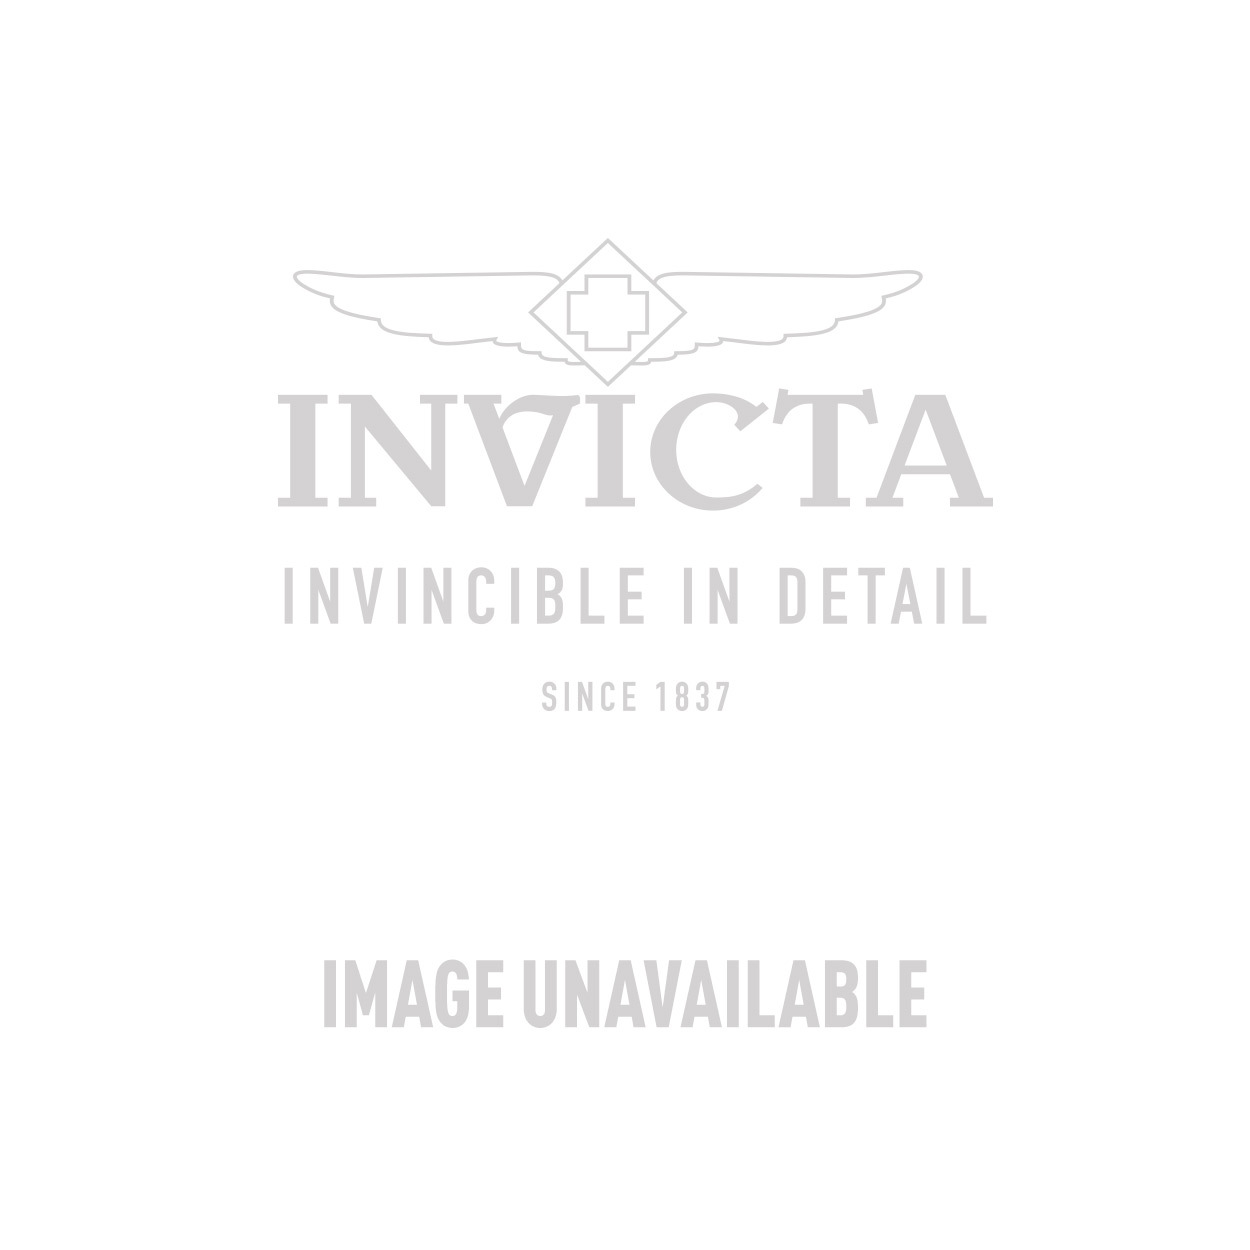 Invicta Excursion Swiss Made Quartz Watch - Black case with Black tone Stainless Steel band - Model 90055